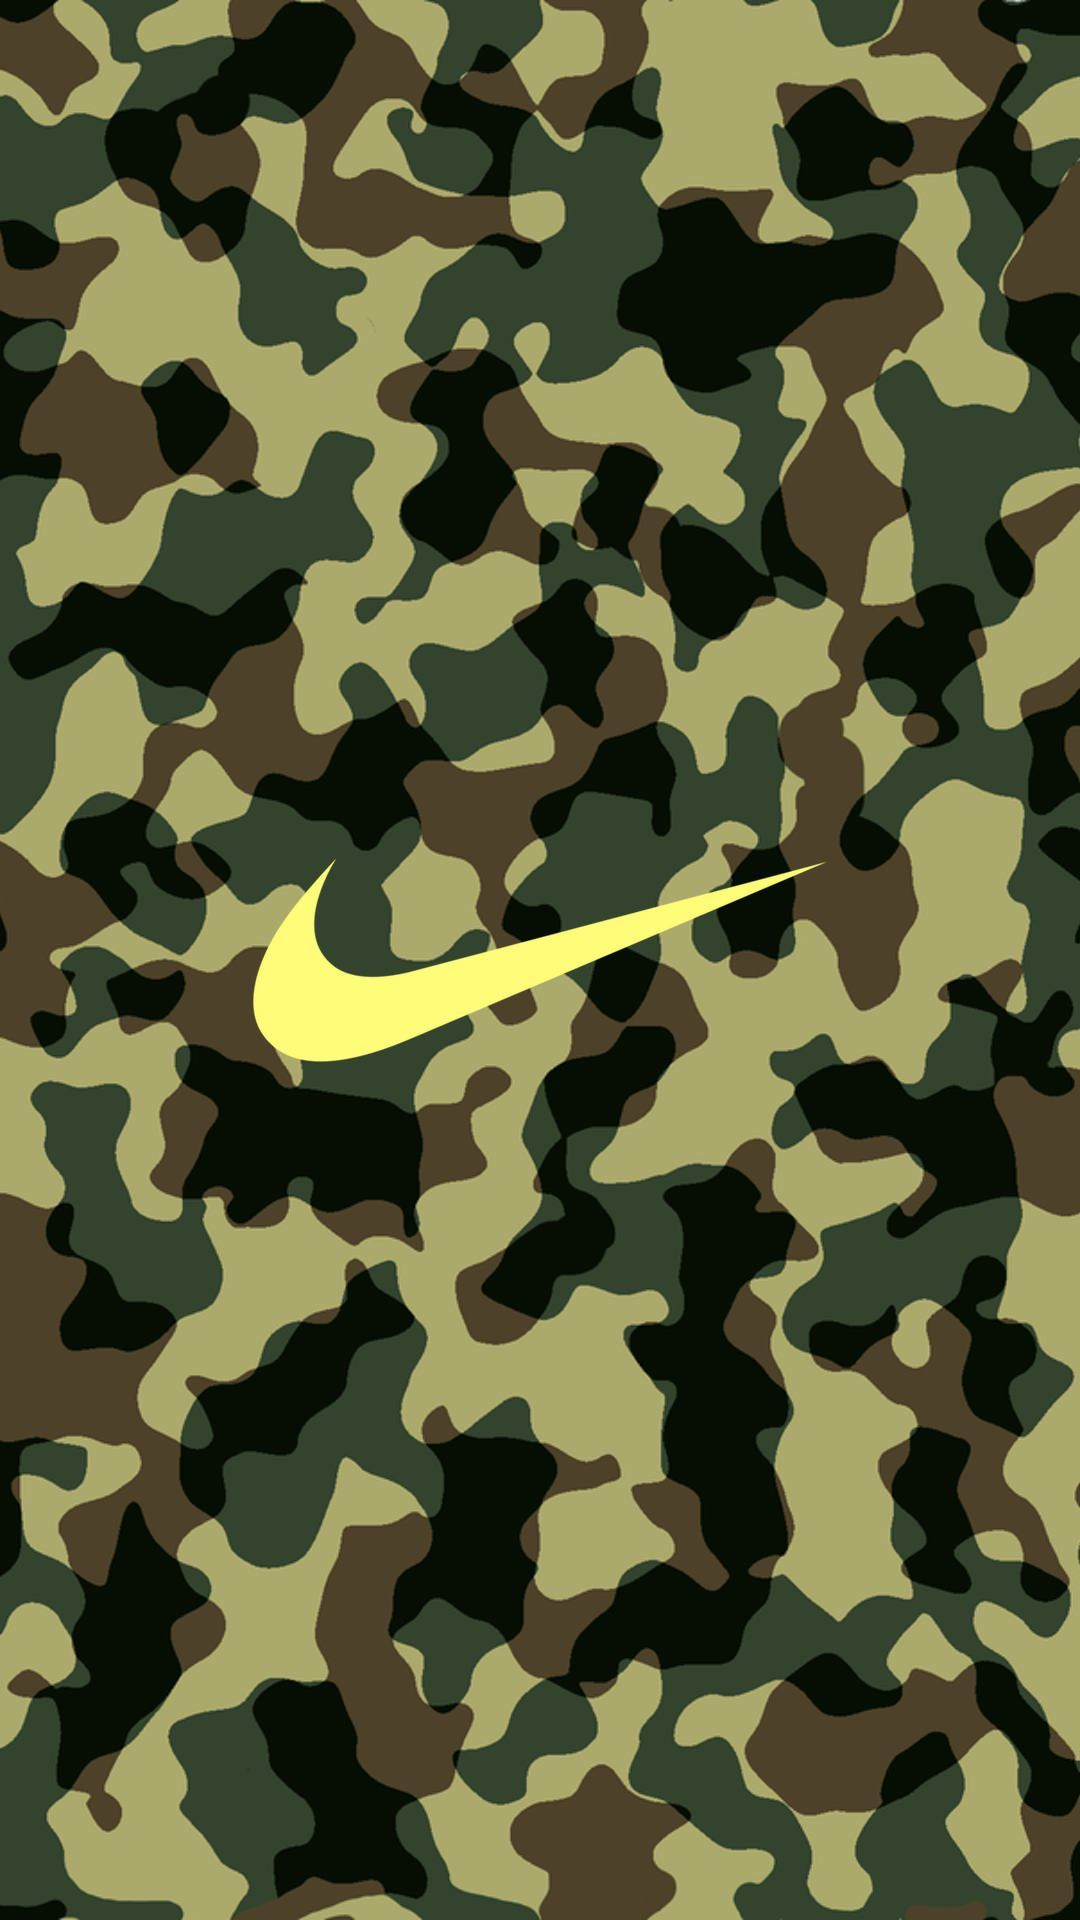 nike logo camouflage iphone wallpaper sayings and wallpapers